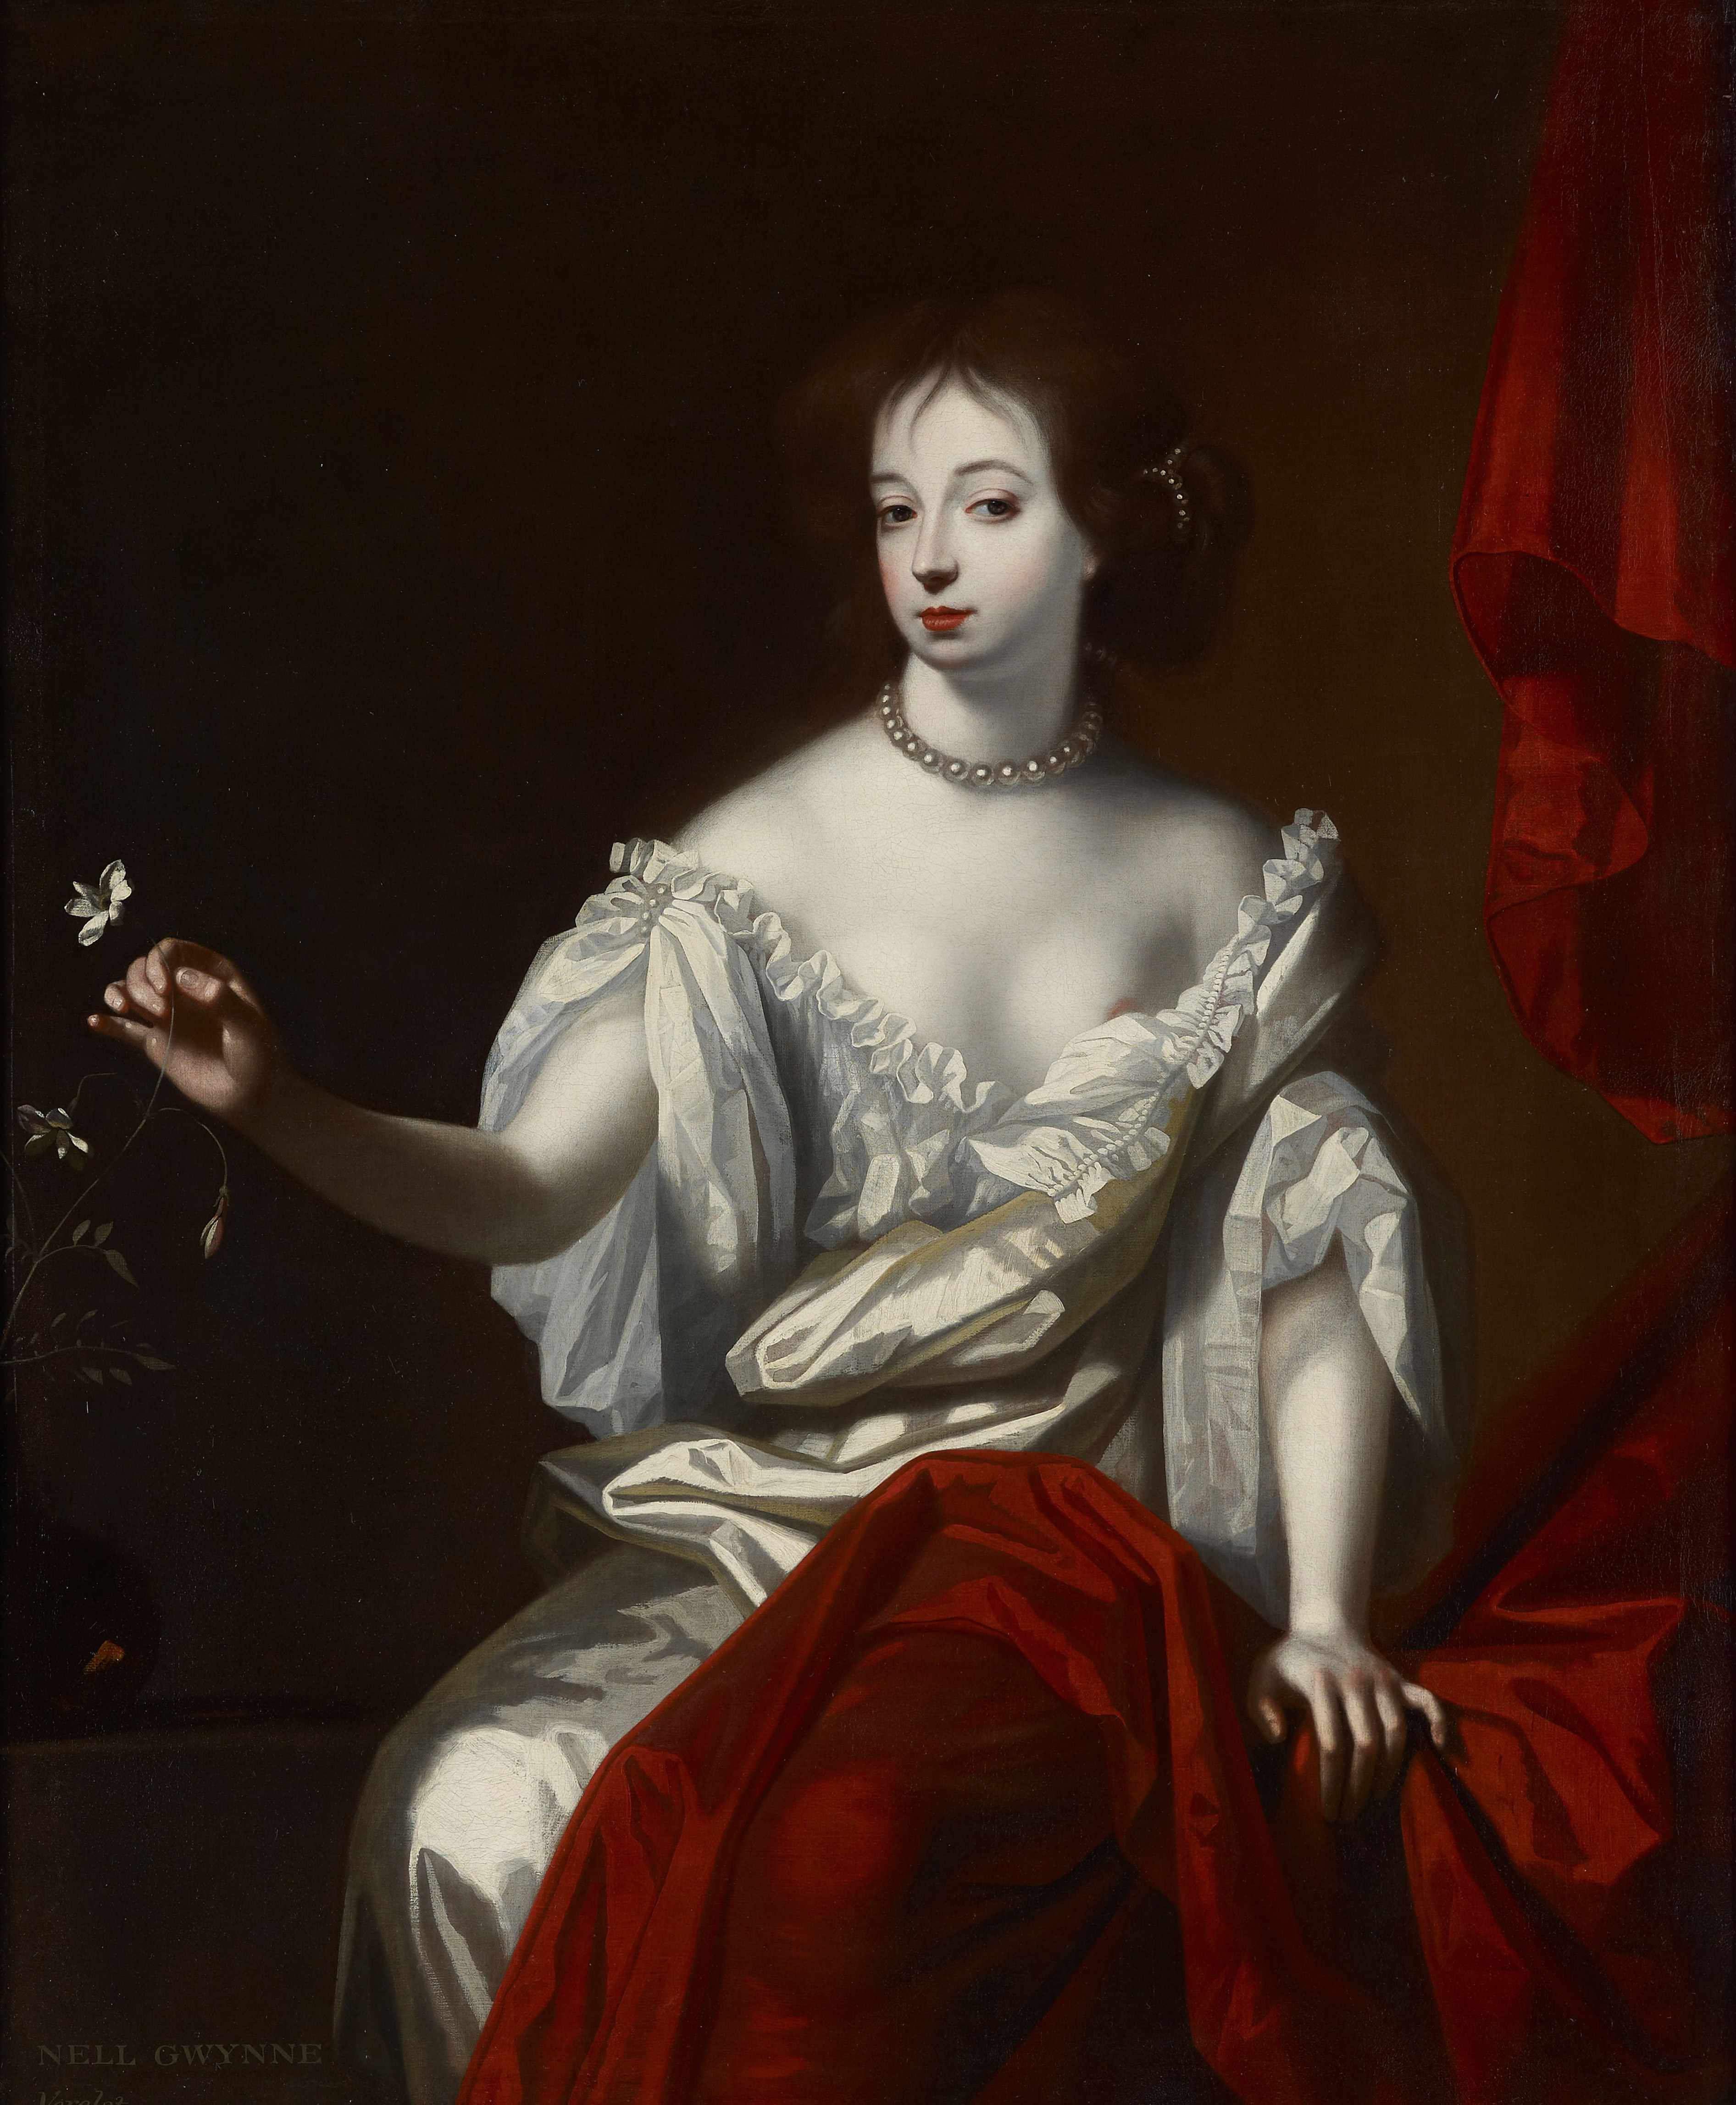 A portrait of actress Nell Gwynn, longtime mistress to King Charles II.